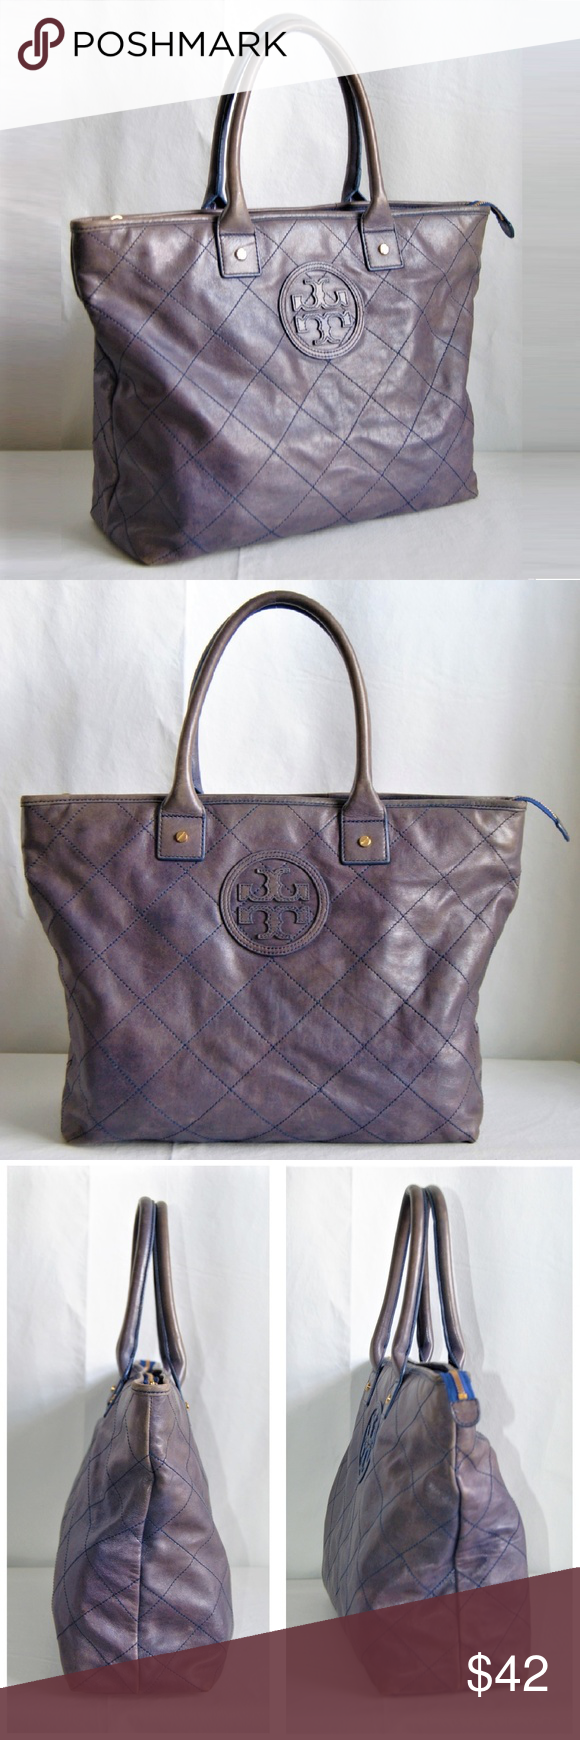 c2629c34665c Tory Burch Jaden Quilted Leather Tote Bag Signature Tory Burch logo  medallion in Blue  Grey